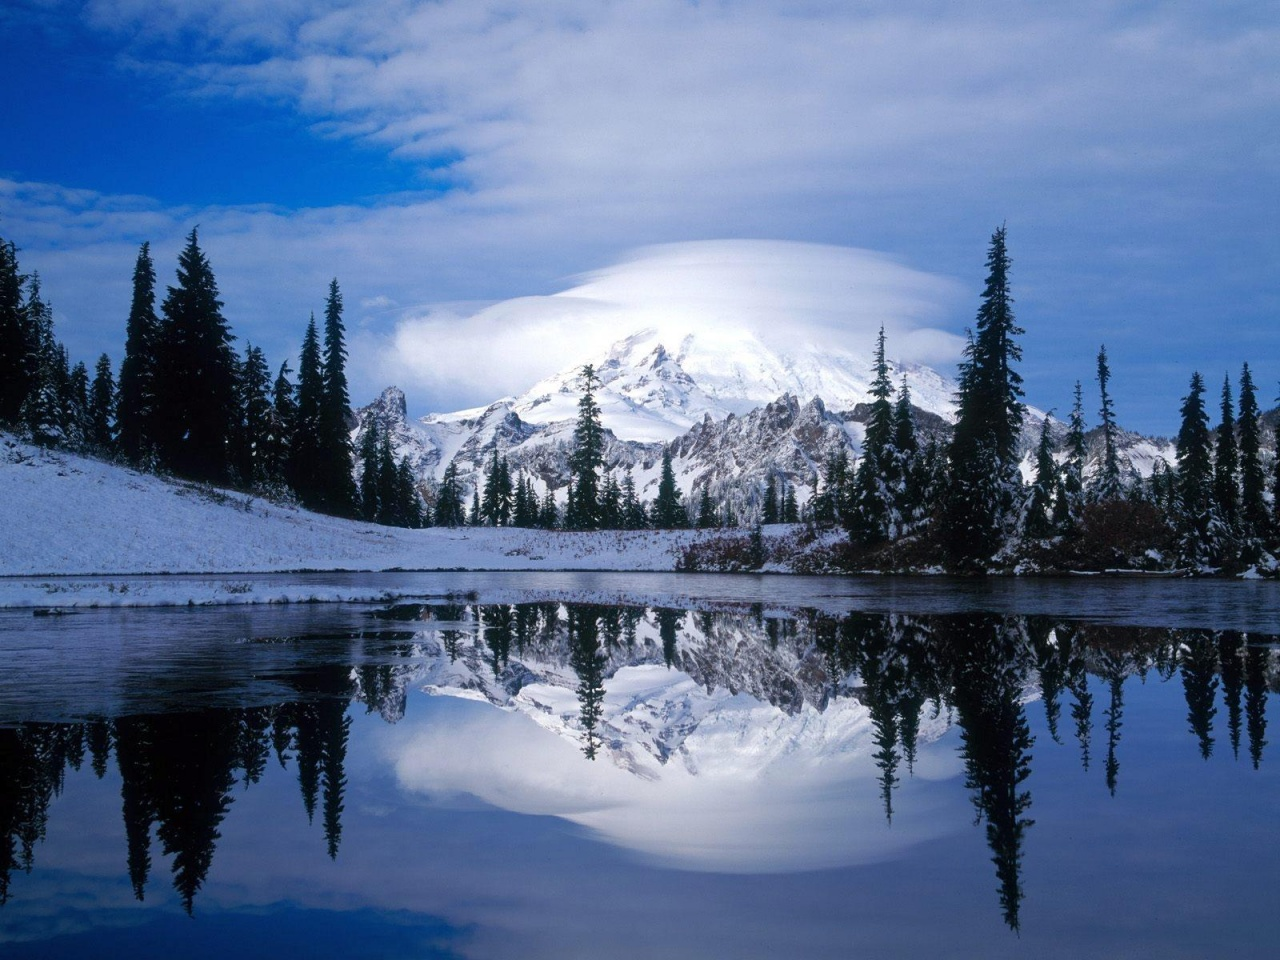 1280x960 Mount Rainier desktop PC and Mac wallpaper 1280x960